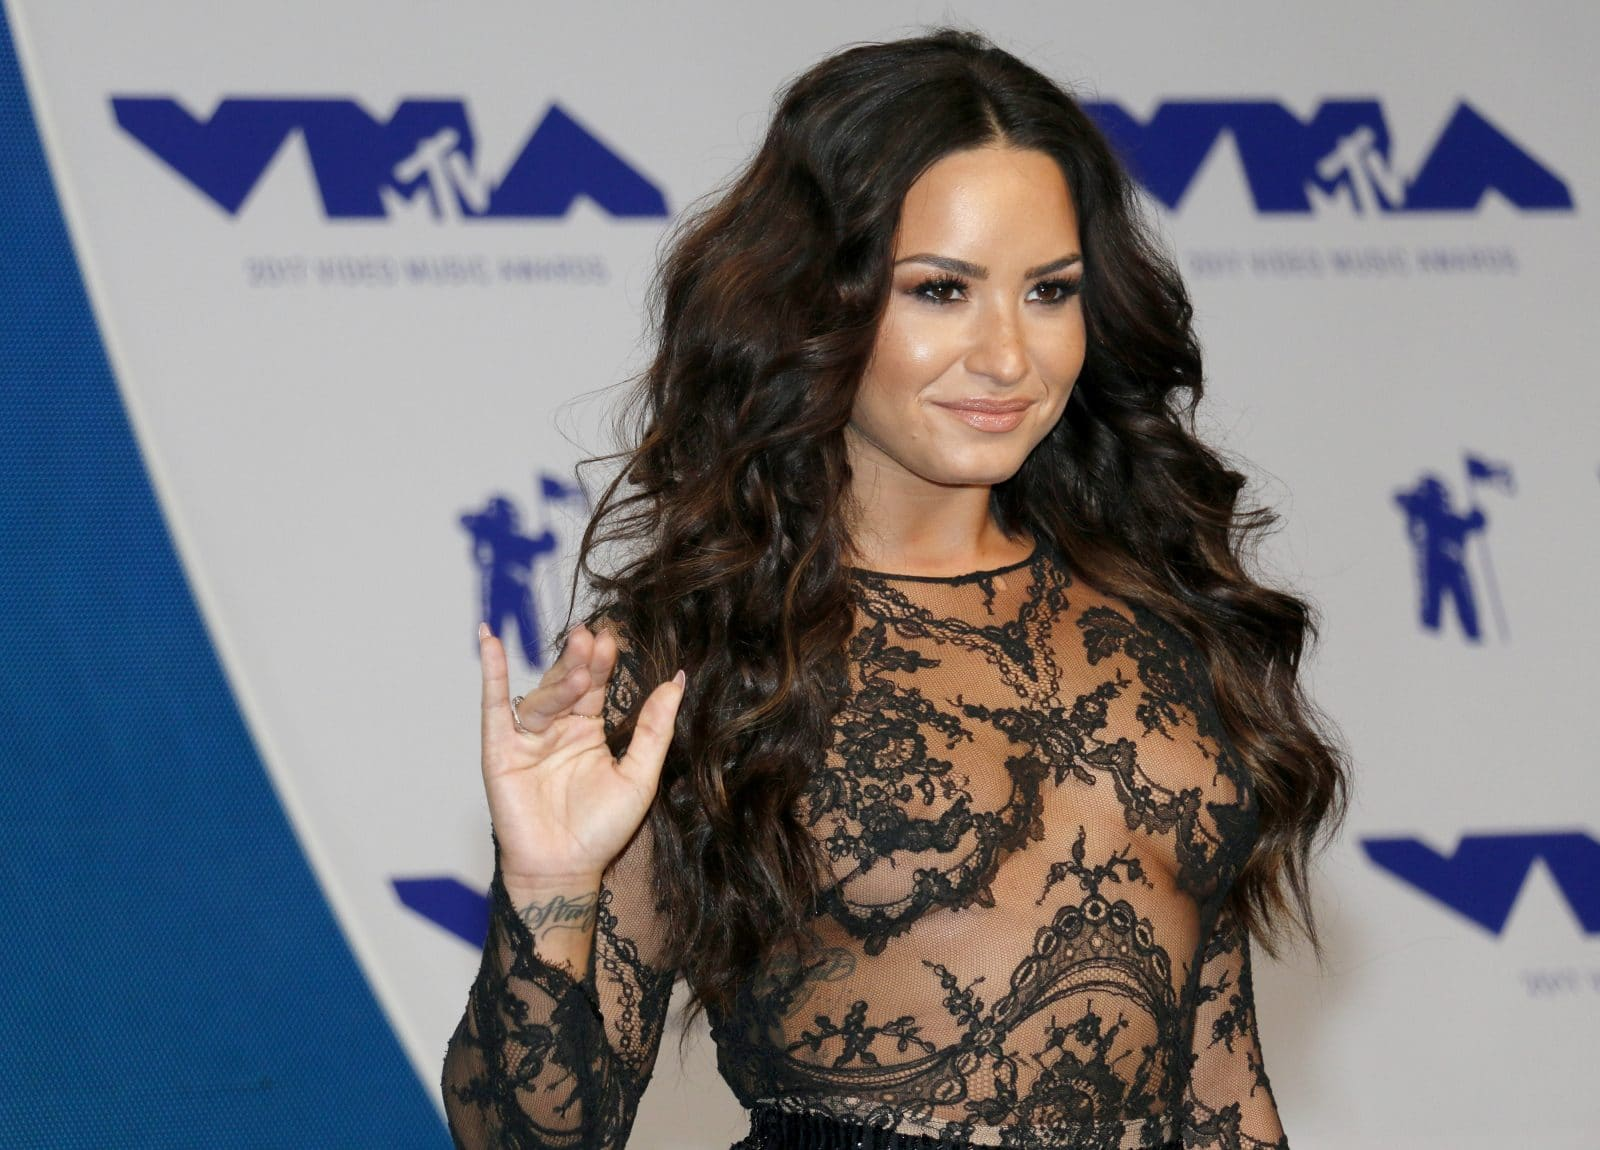 Demi Lovato is embarrassed by Max Ehrich